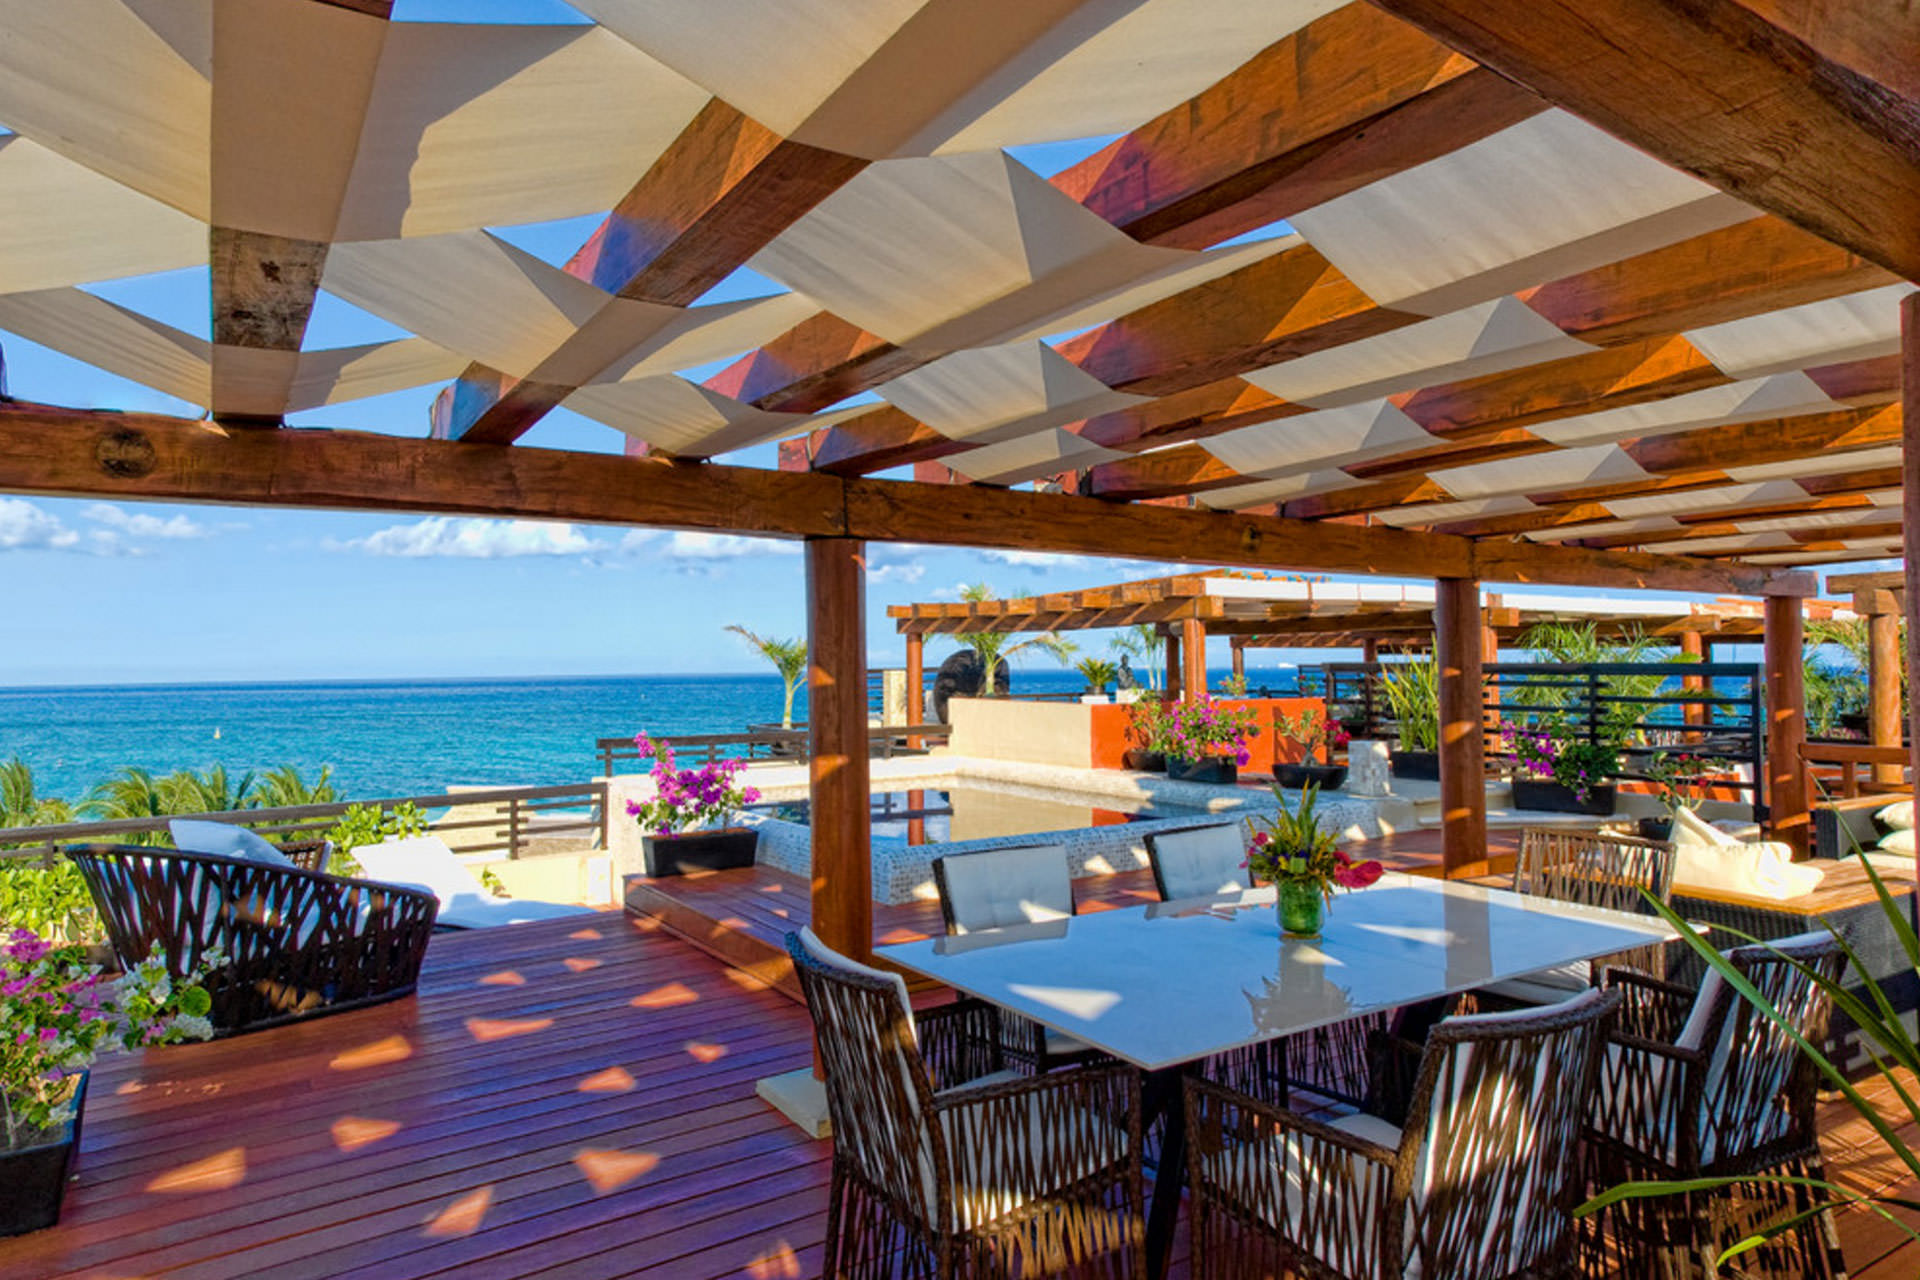 Pergola Shade: Pratical Solutions for Every Outdoor Space on Canvas Sun Shade Pergola id=26223